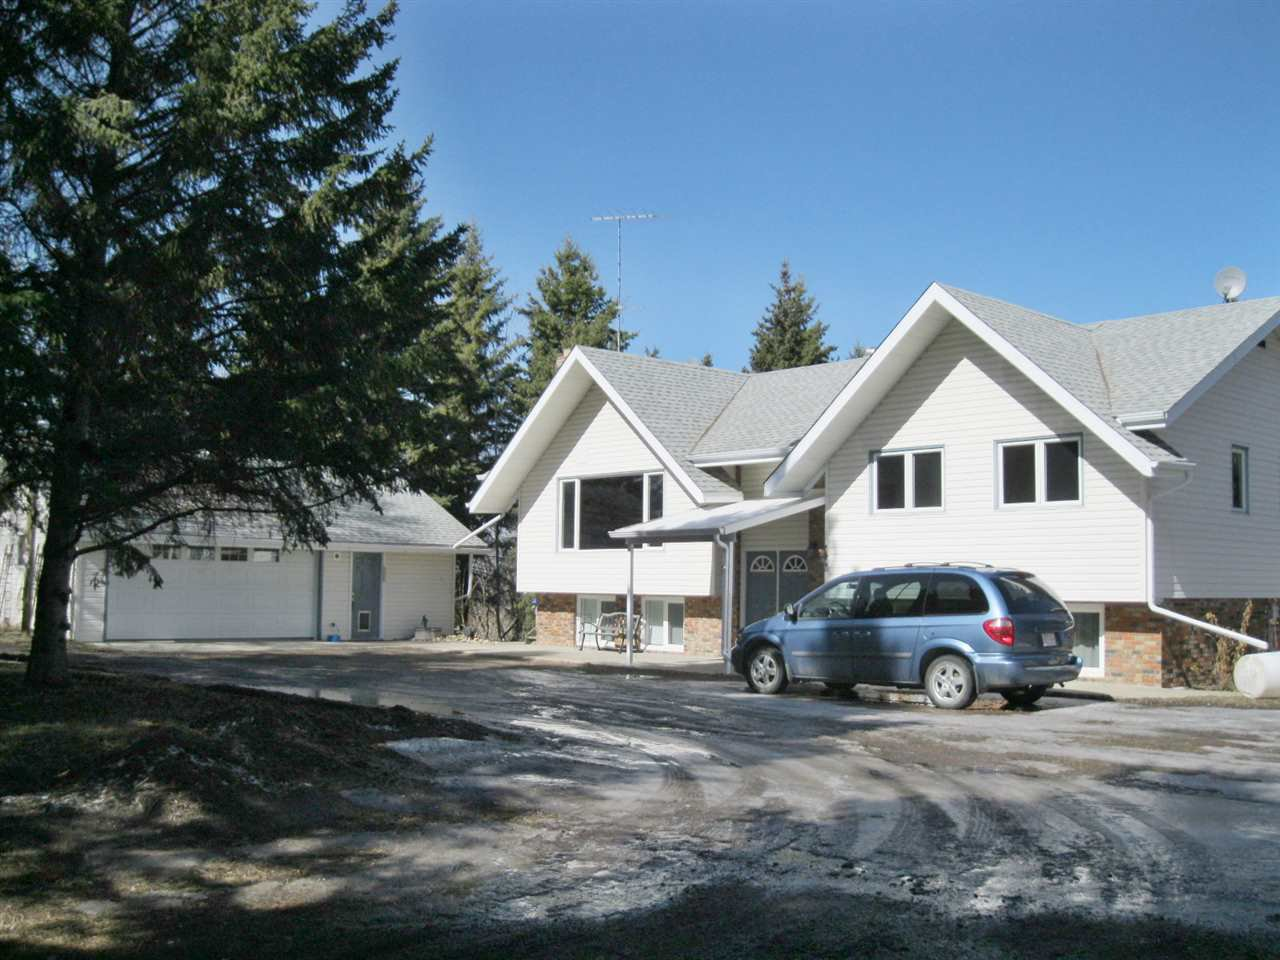 Main Photo: 1210 TWP RD 522: Rural Parkland County House for sale : MLS®# E4186200